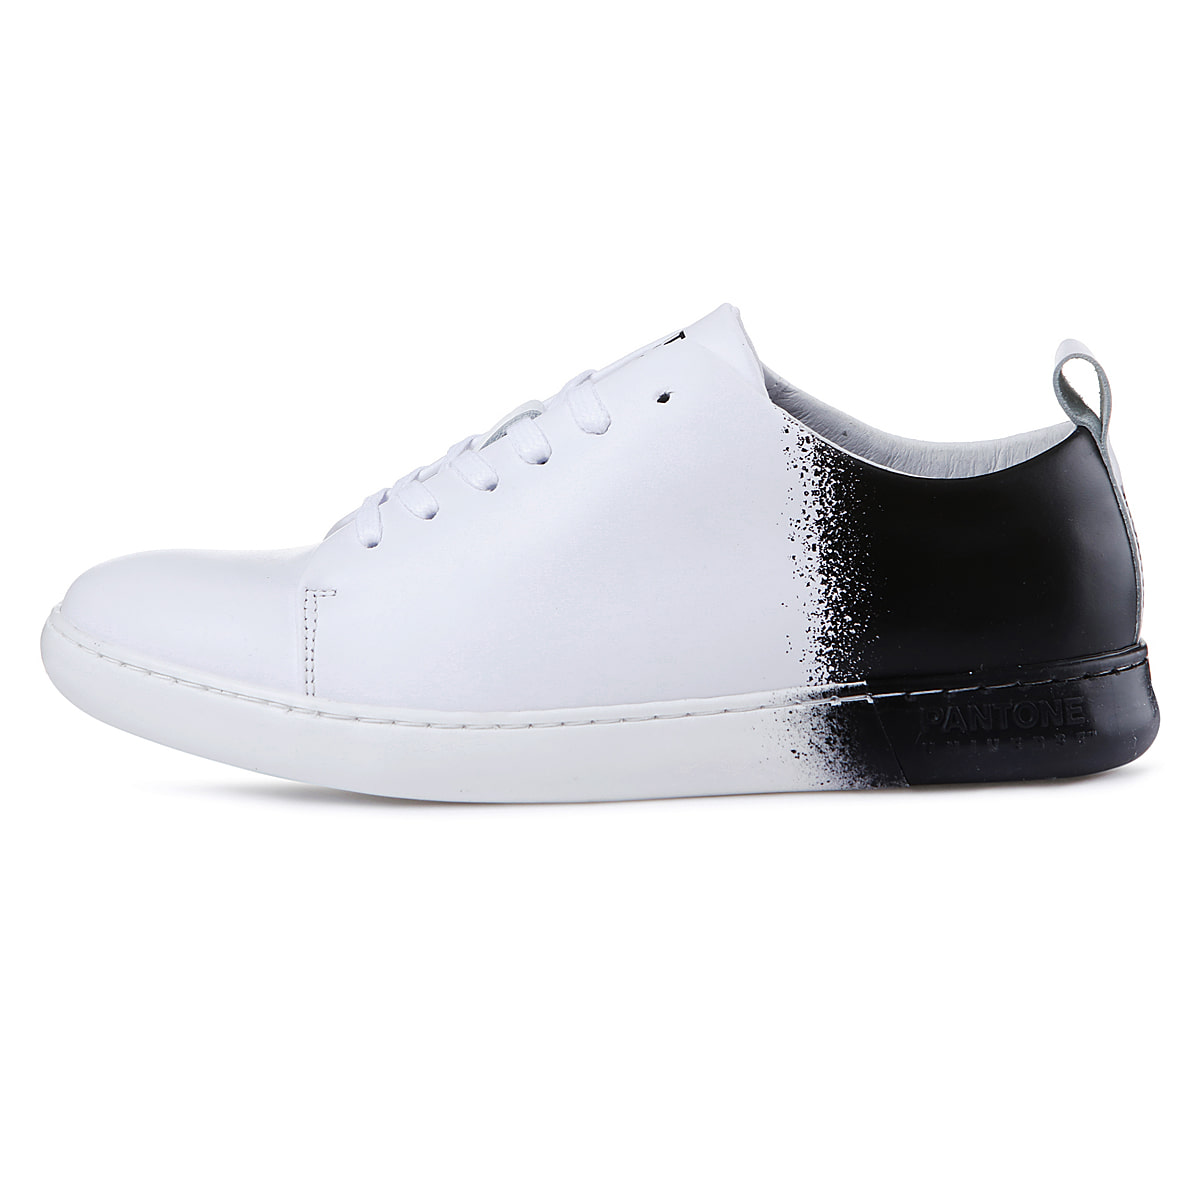 [팬톤]NYC Sneakers_Whisper White [P172SE03BK]